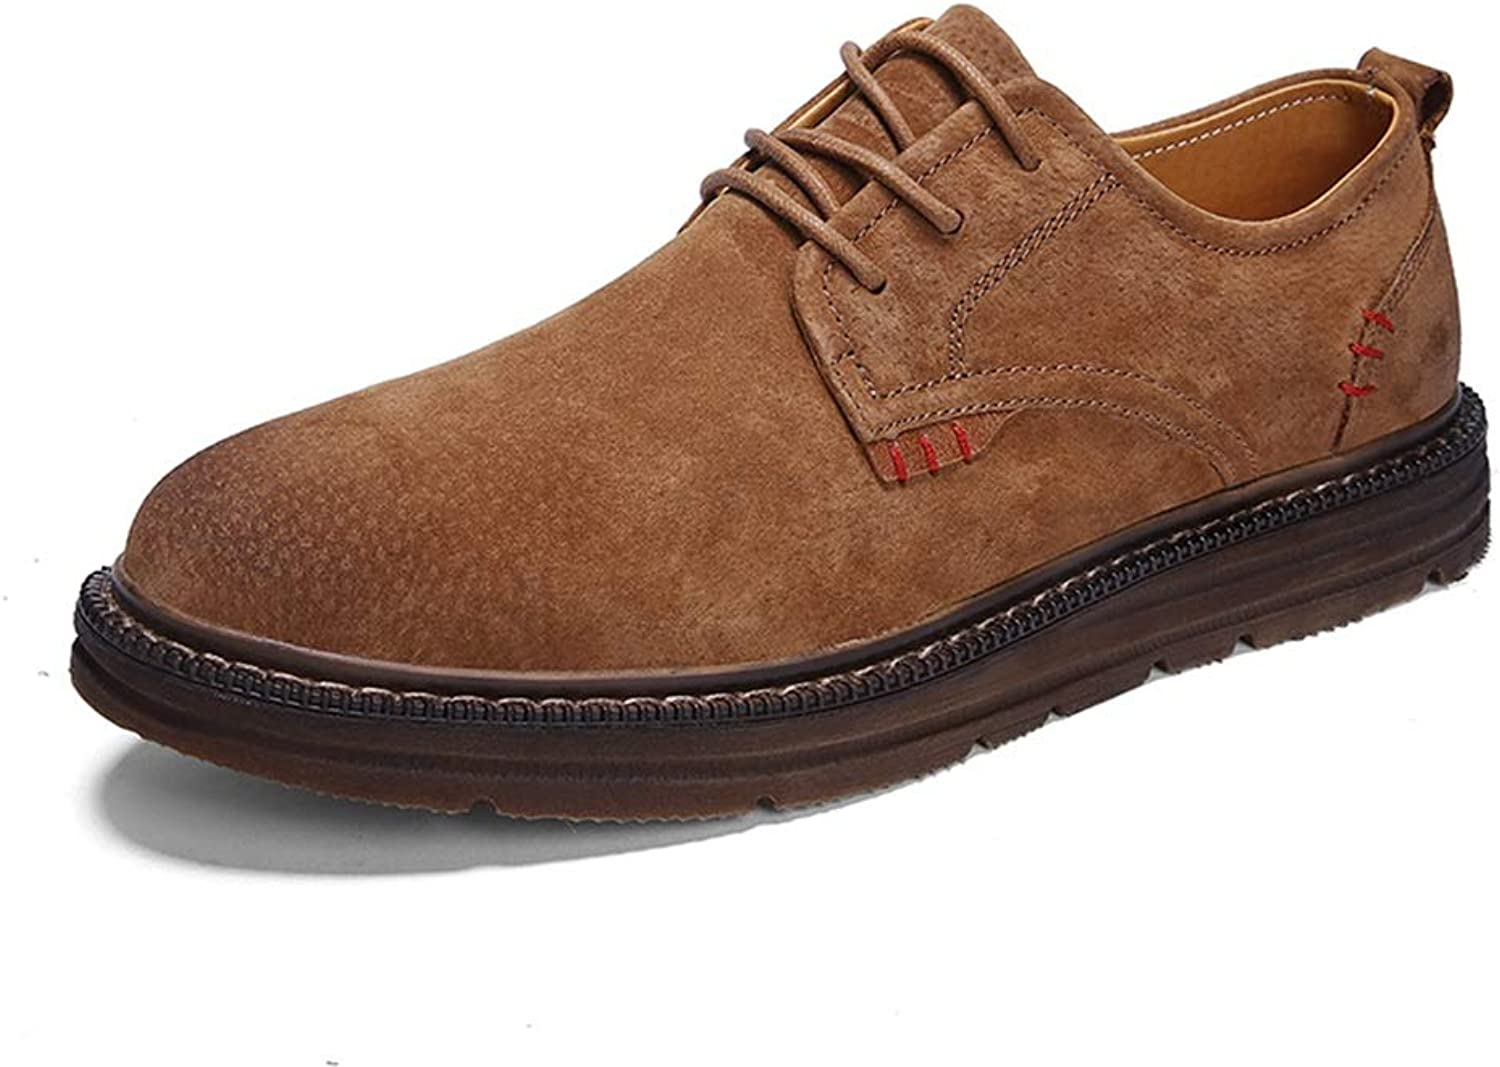 CHENDX shoes, Men's Fashion Round Toe Lace-up Oxford Casual Classic Simple Retro Formal shoes (color   Brown, Size   8 UK)